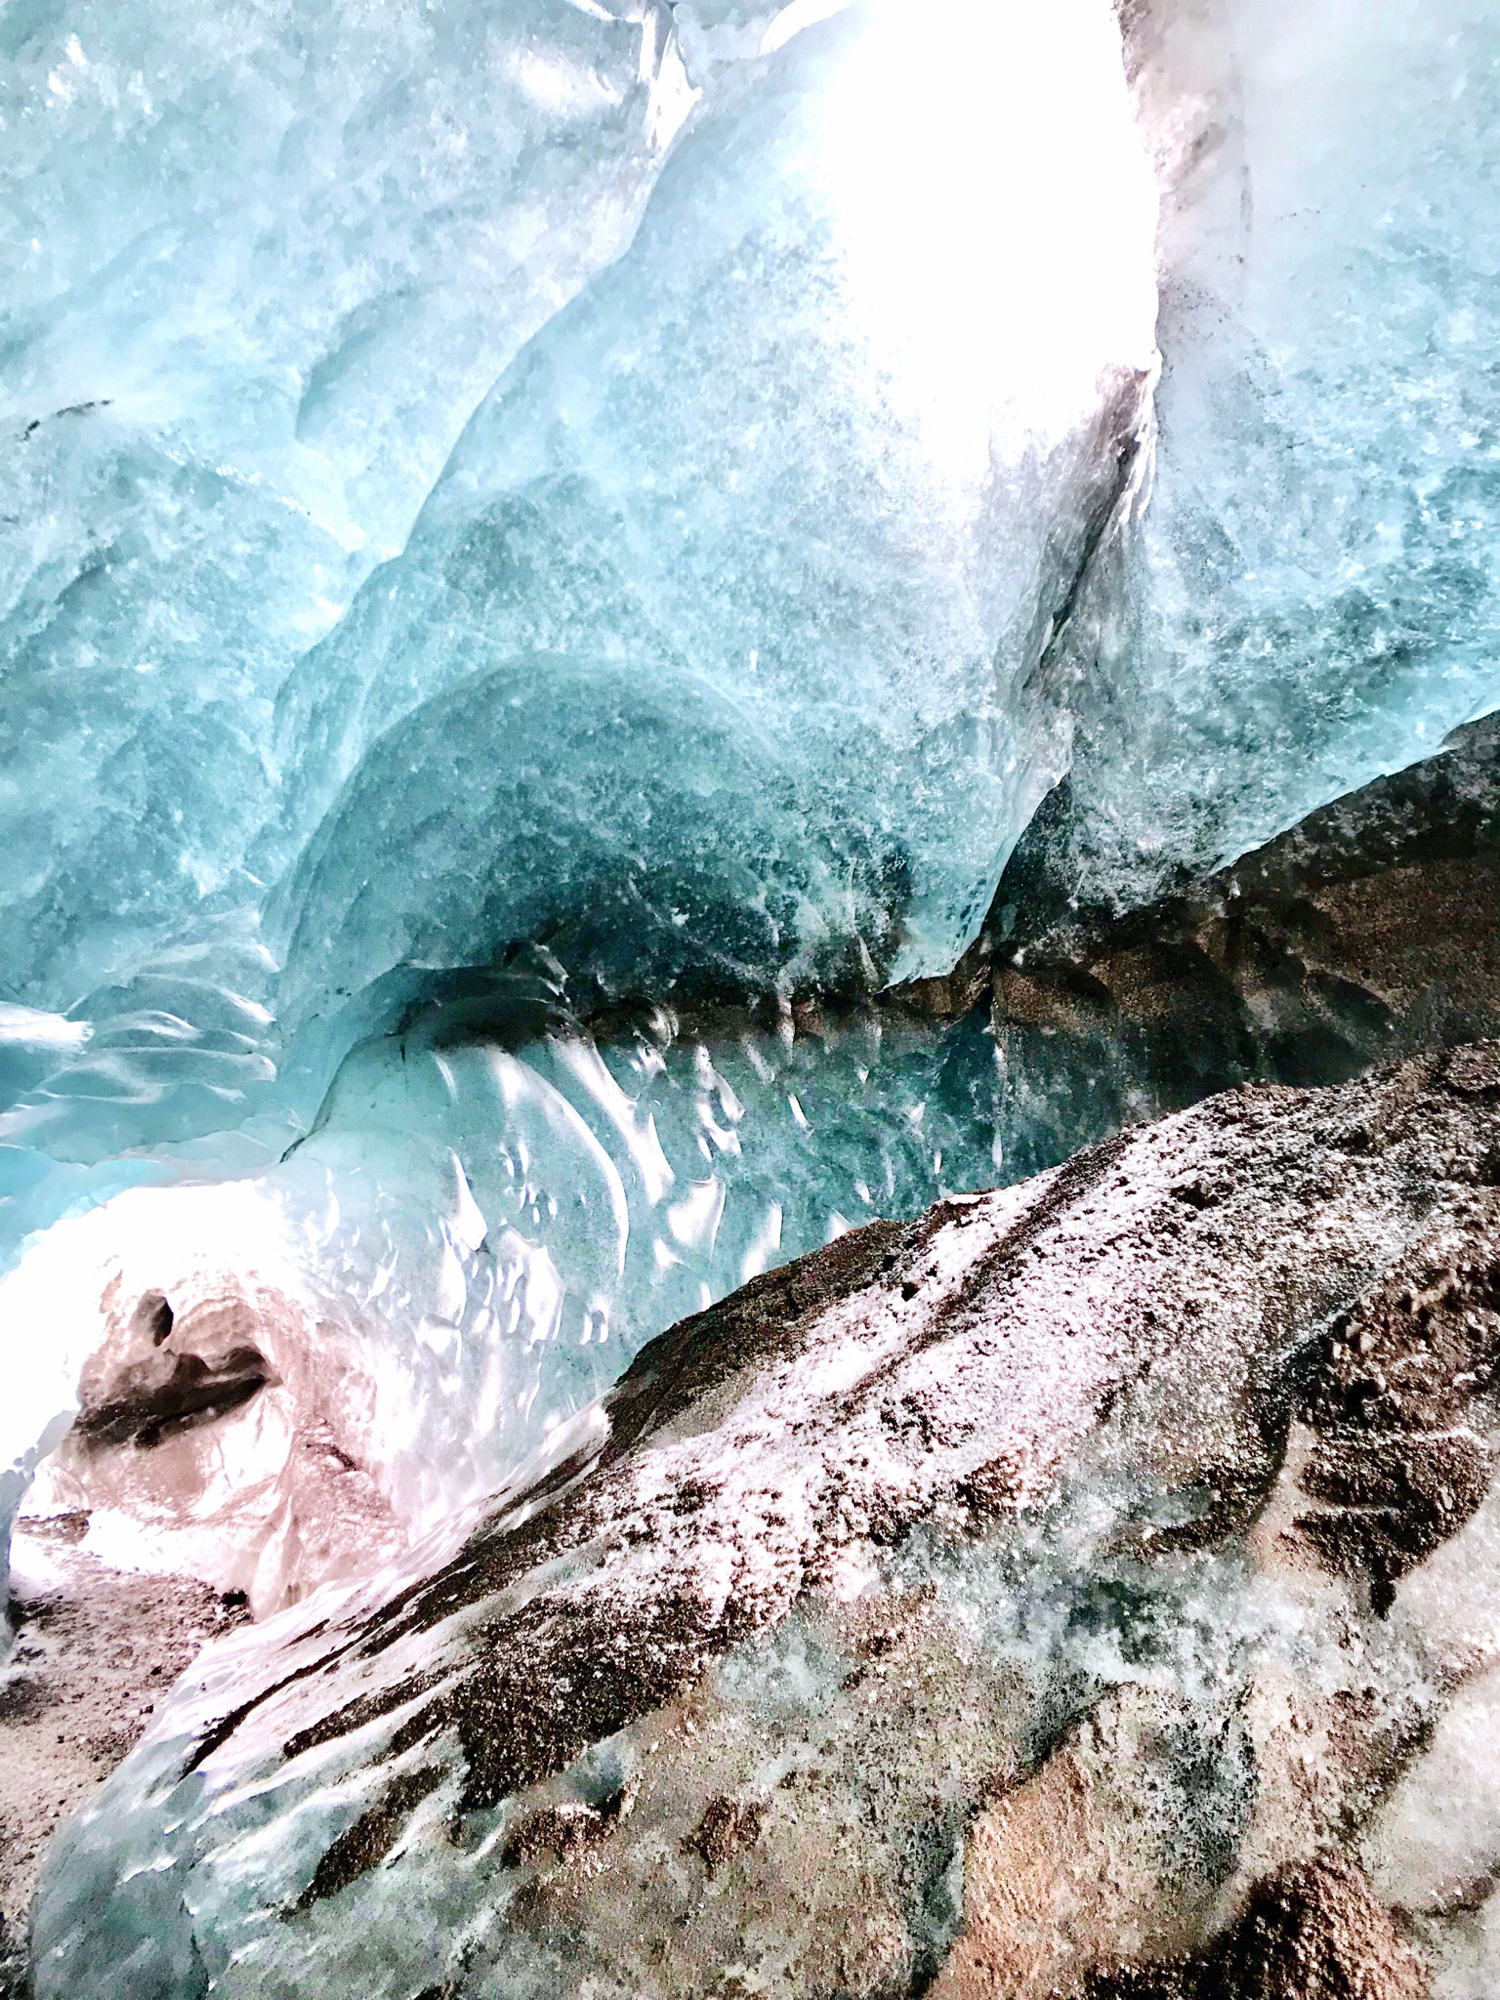 Iceland Guide - Ice Cave Tour